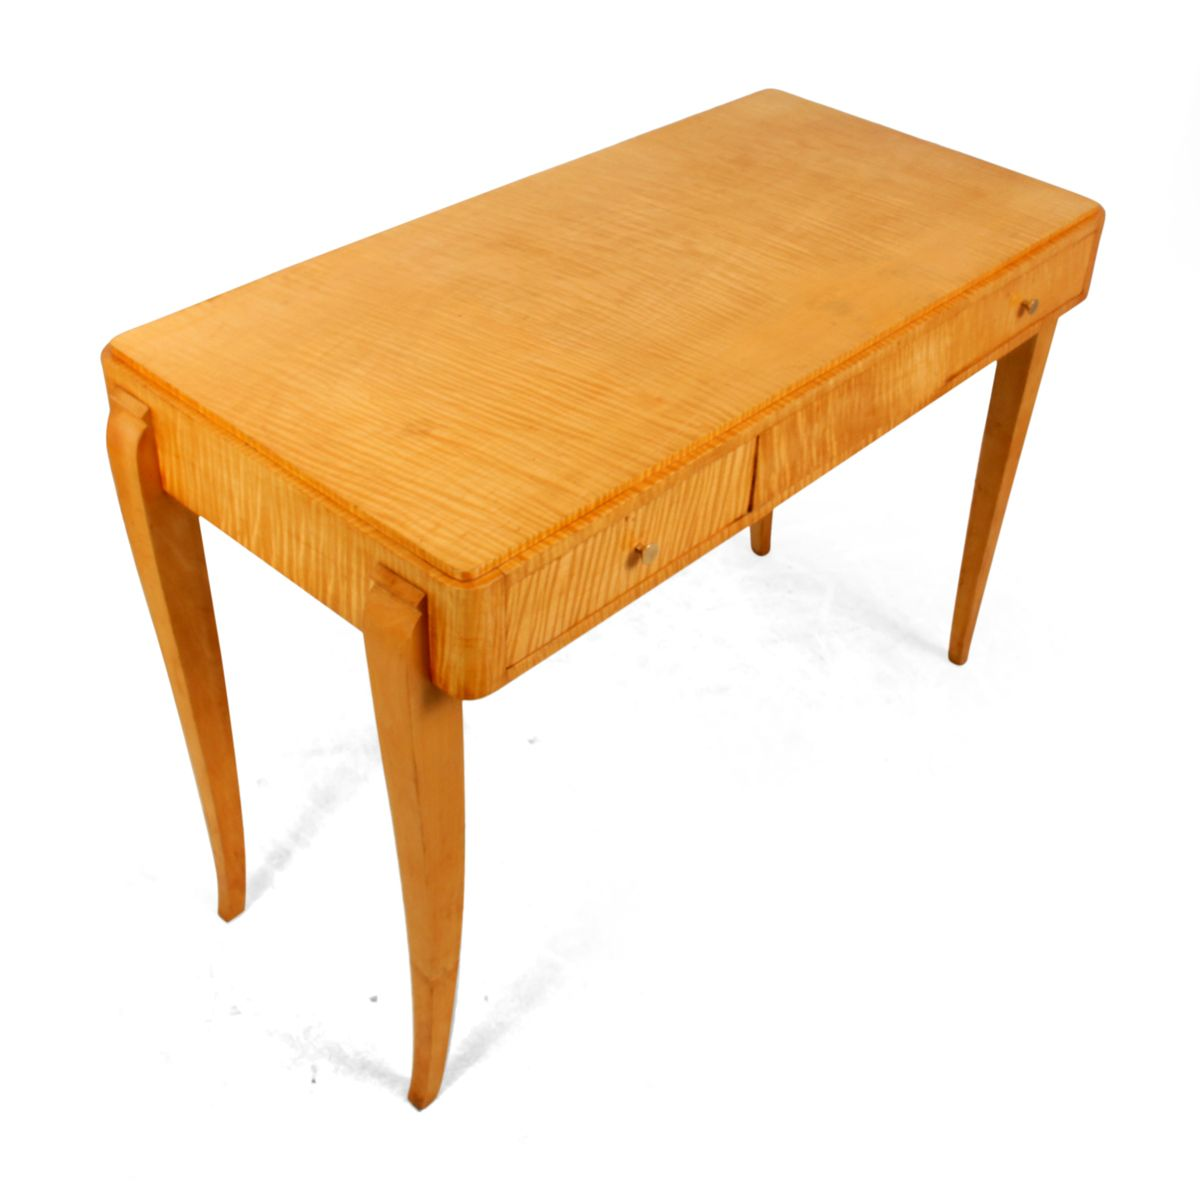 Art deco writing table in satin birch 1930s for sale at for Miroir art deco 1930